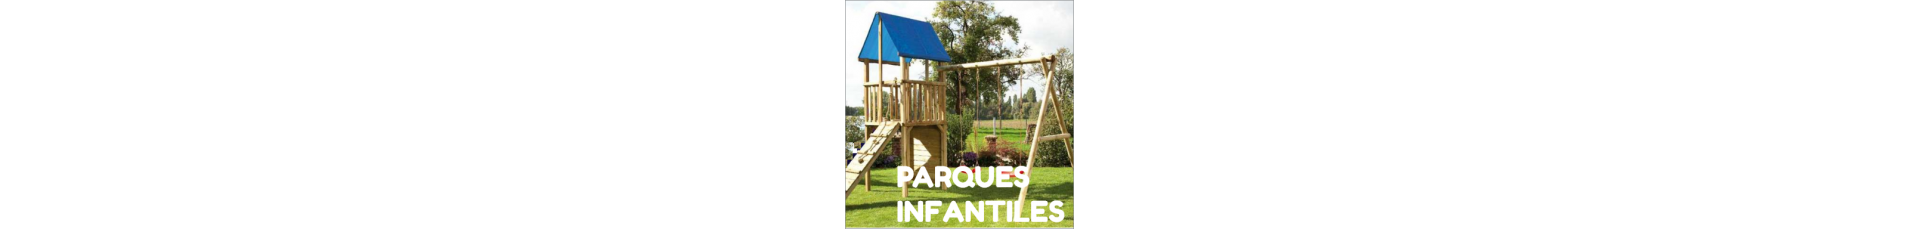 parques infantiles Indoor Outdoor - Salto Feliz S.L.